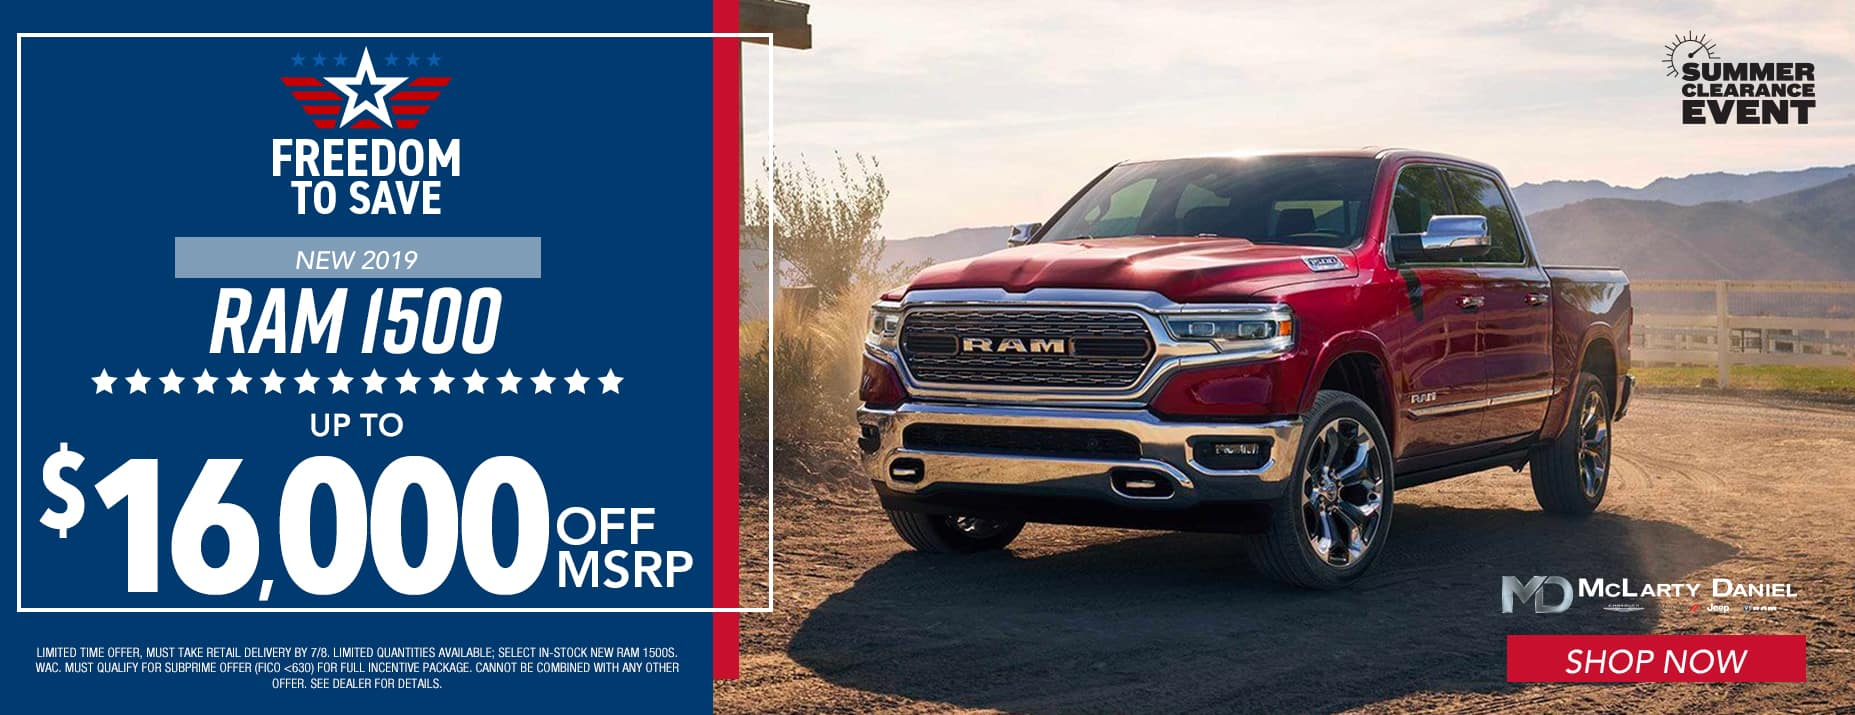 2019 Ram 1500, up to $15,000 off MSRP.